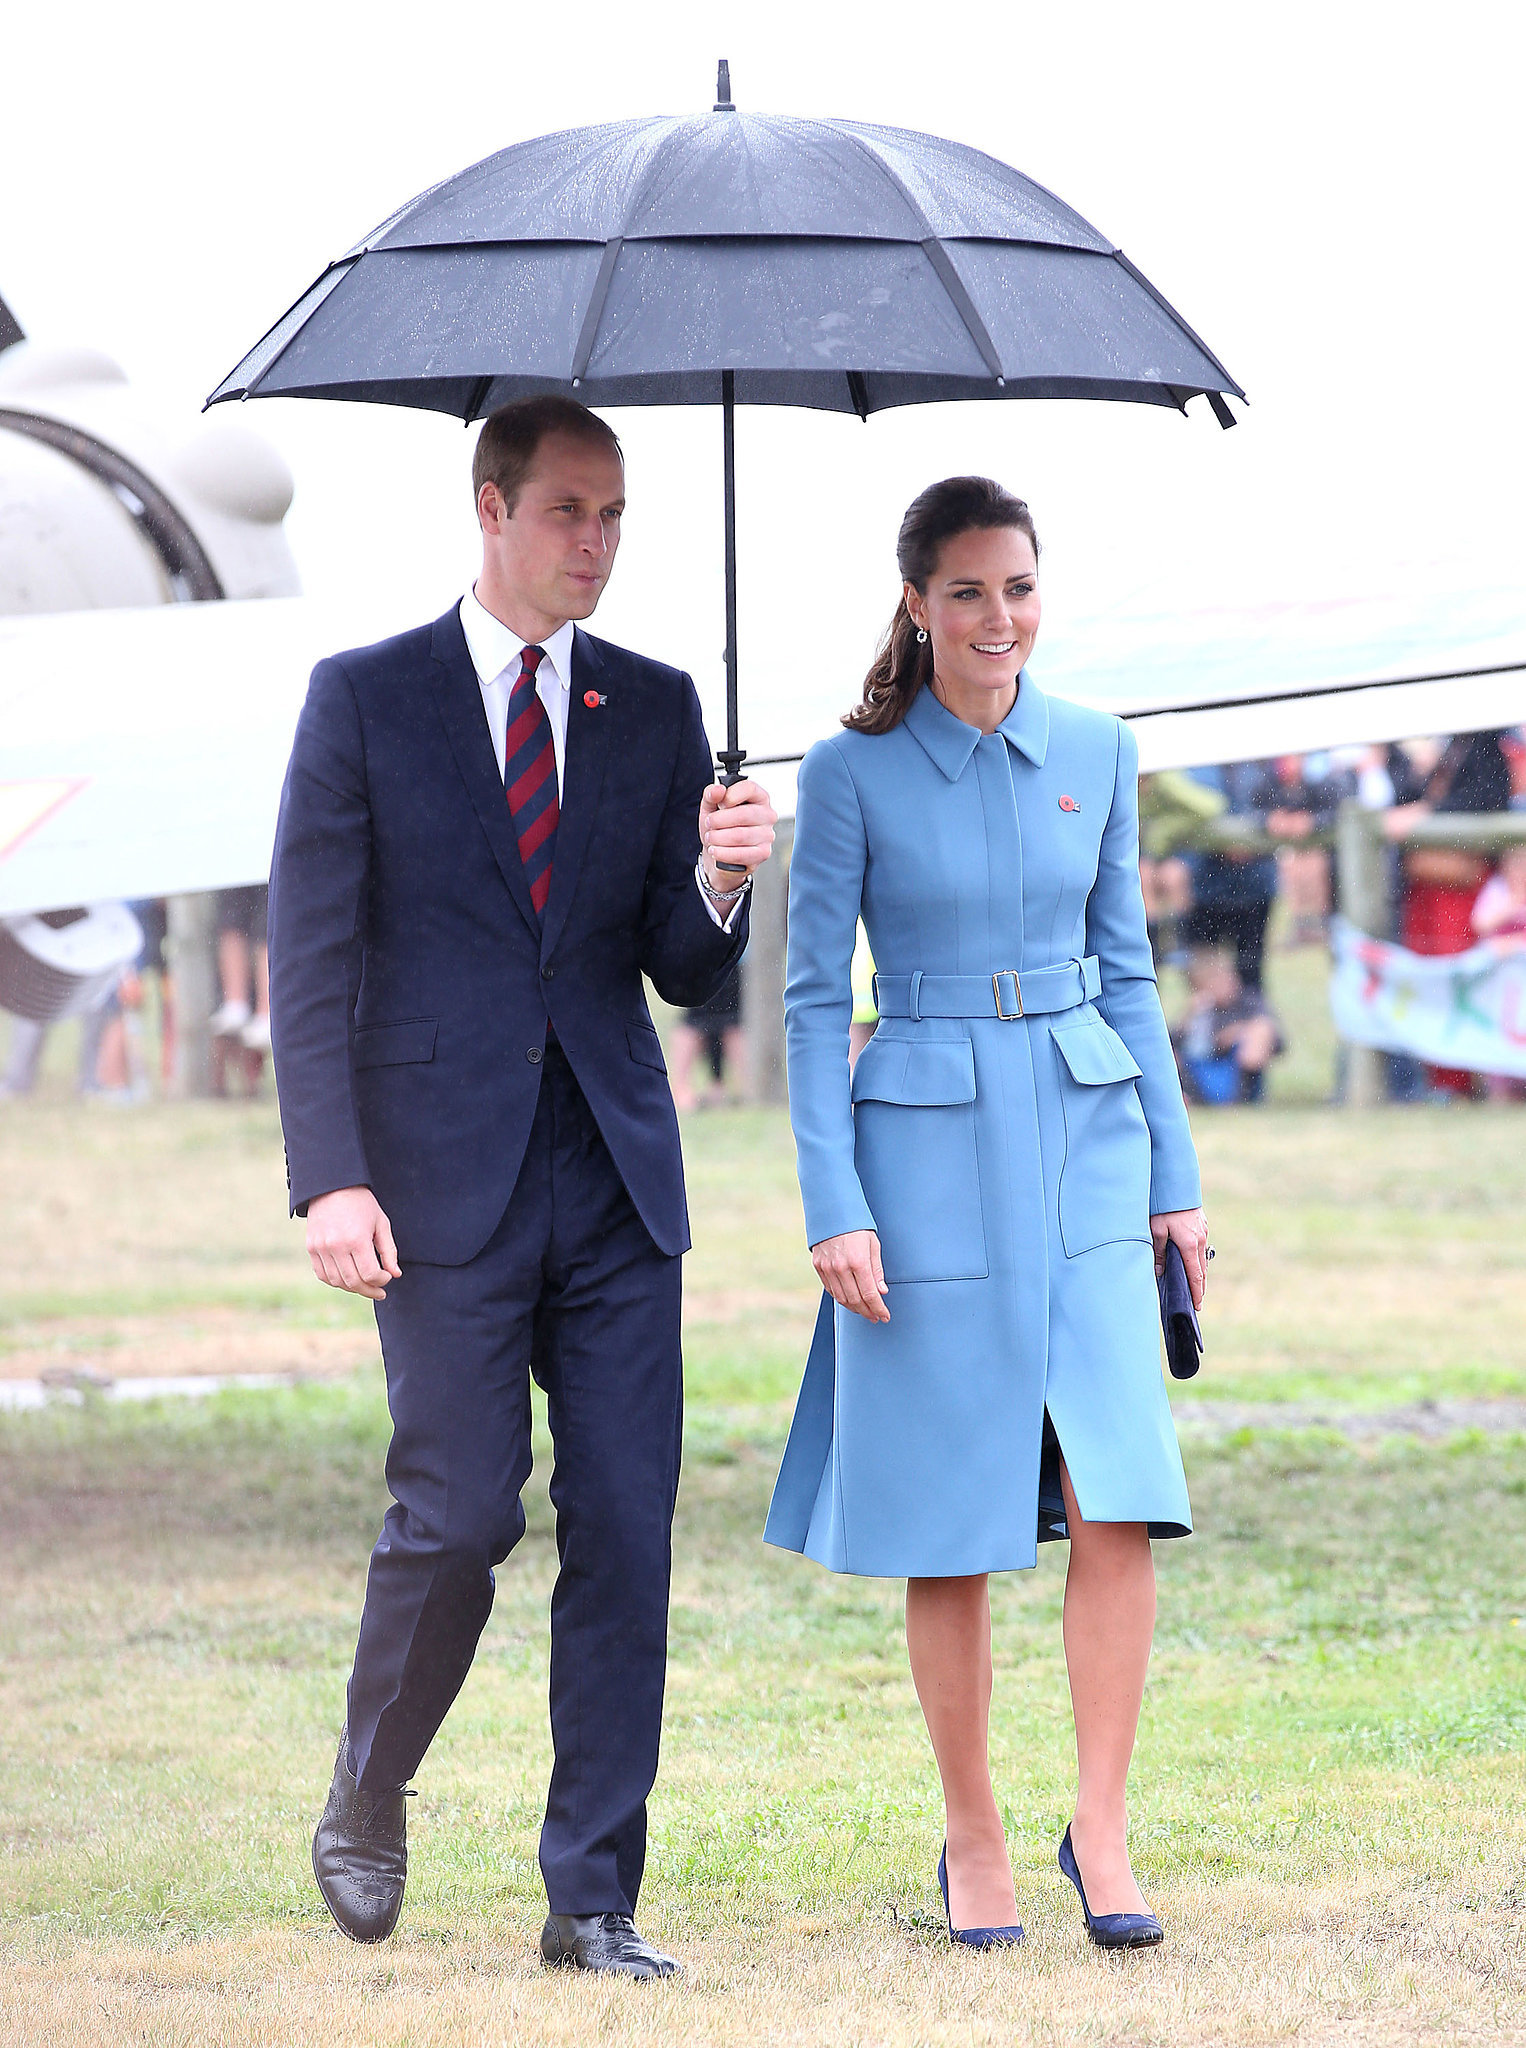 The Royal Couple at the Knights of the Sky Exhibit